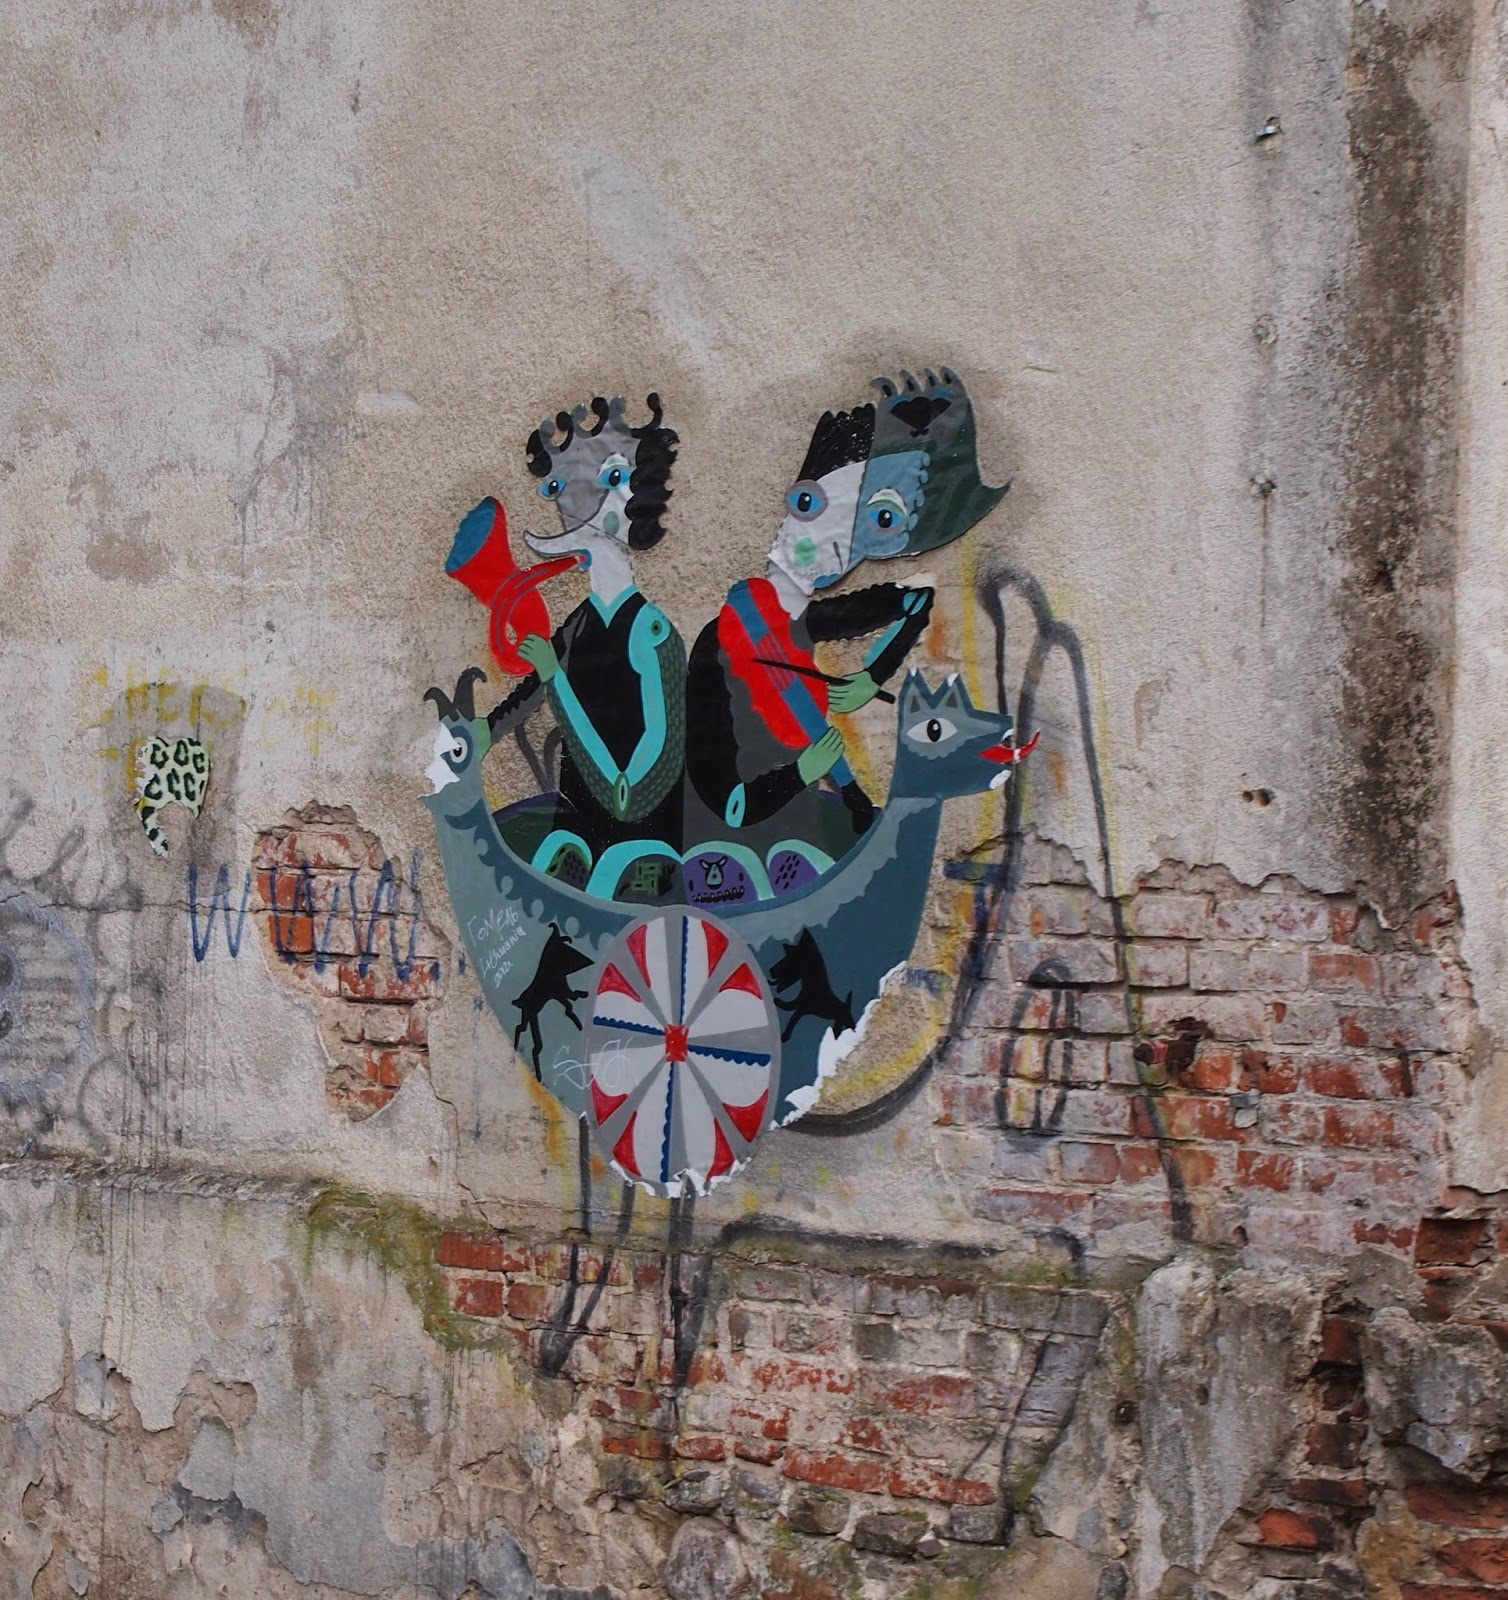 strange but cool street art on a dilapidated building in Kaunas, Lithuania